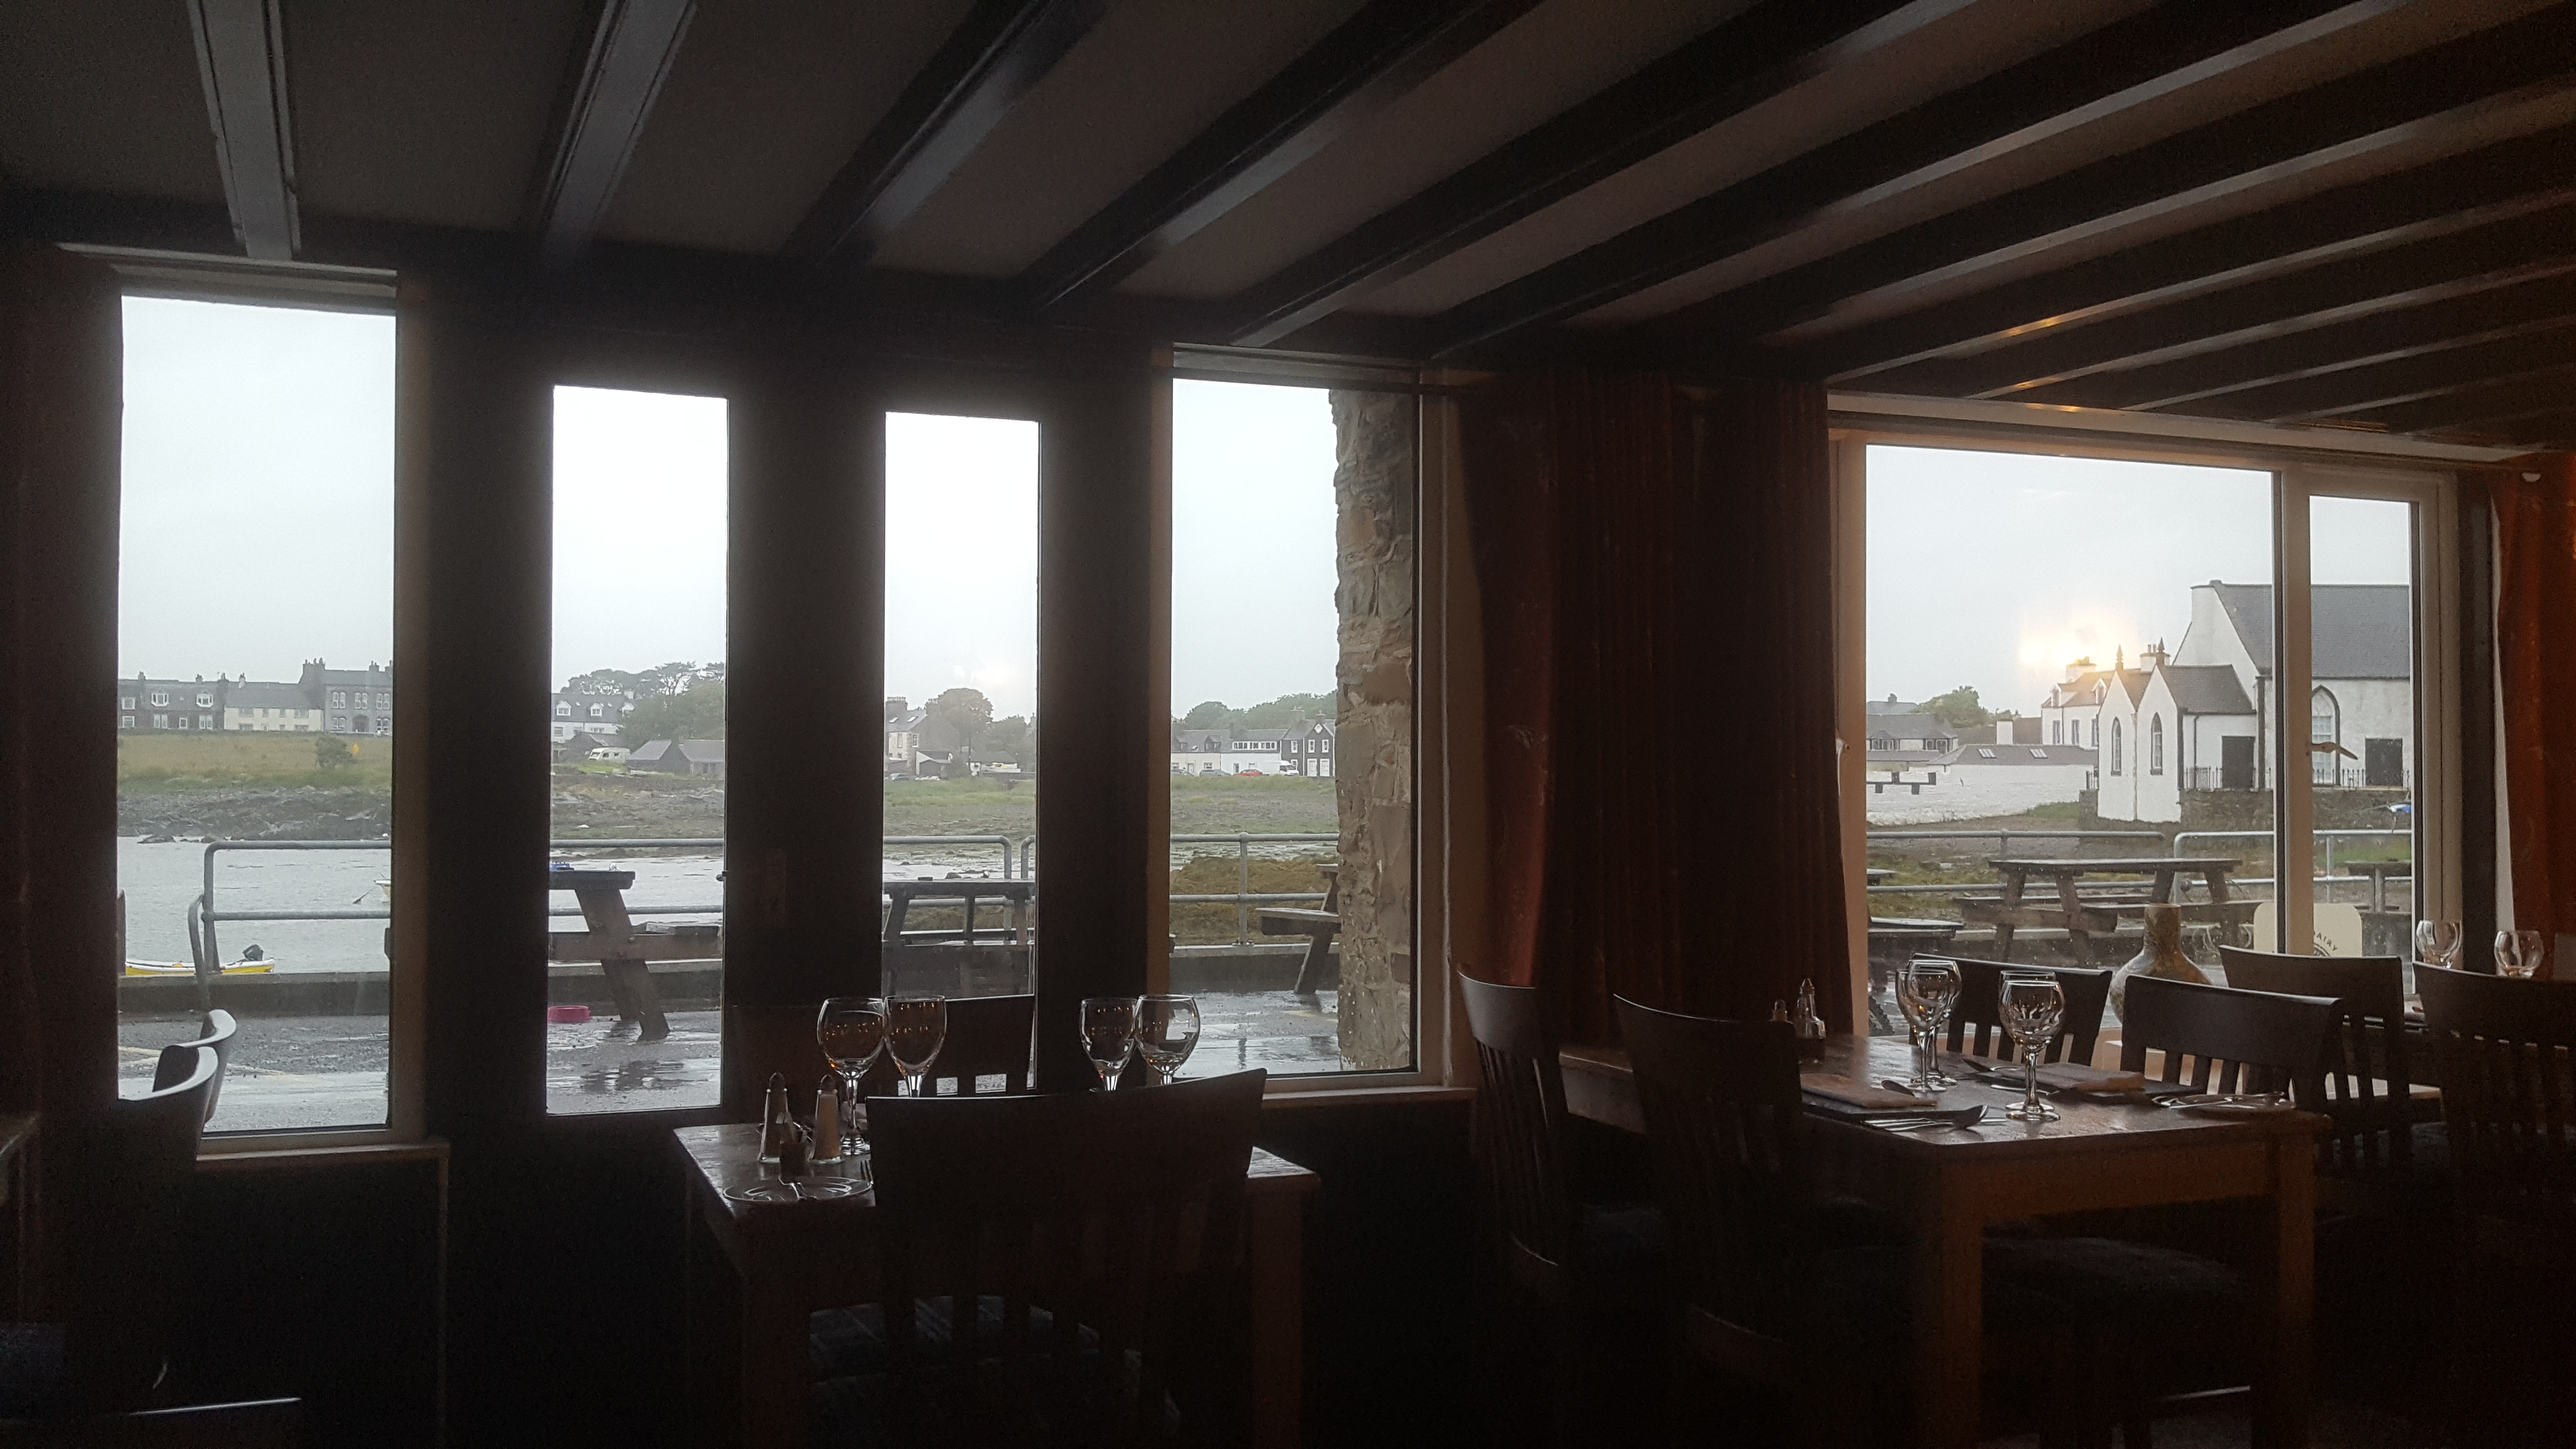 Steampacket Inn view Isle of Whithorn